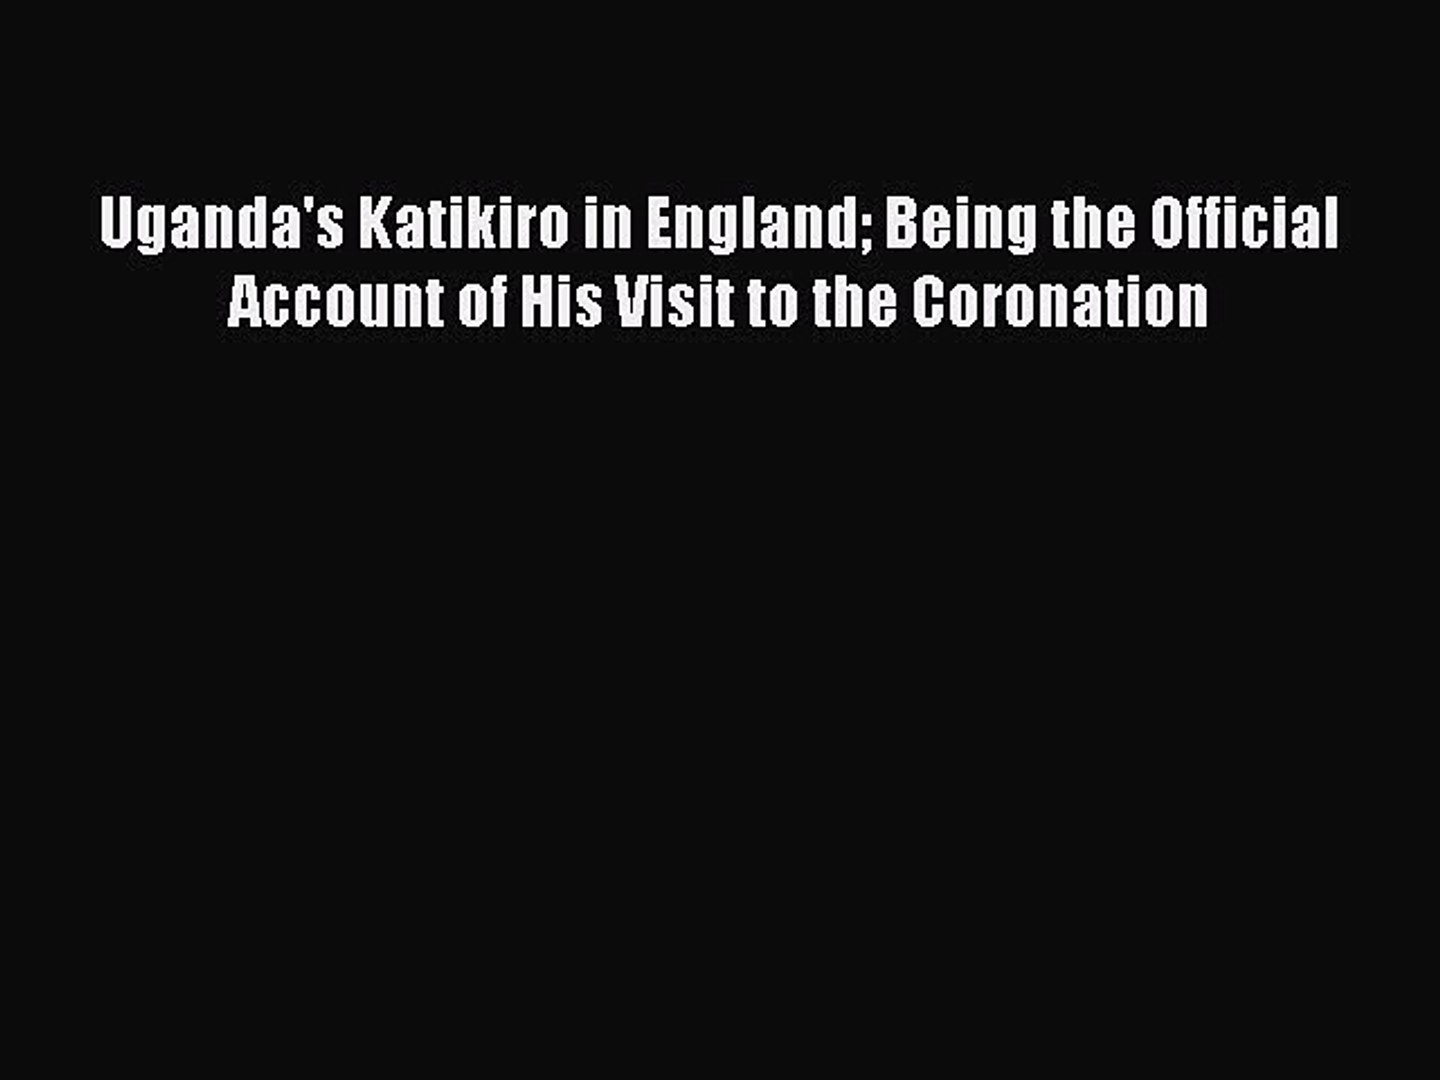 Read Uganda's Katikiro in England Being the Official Account of His Visit to the Coronation